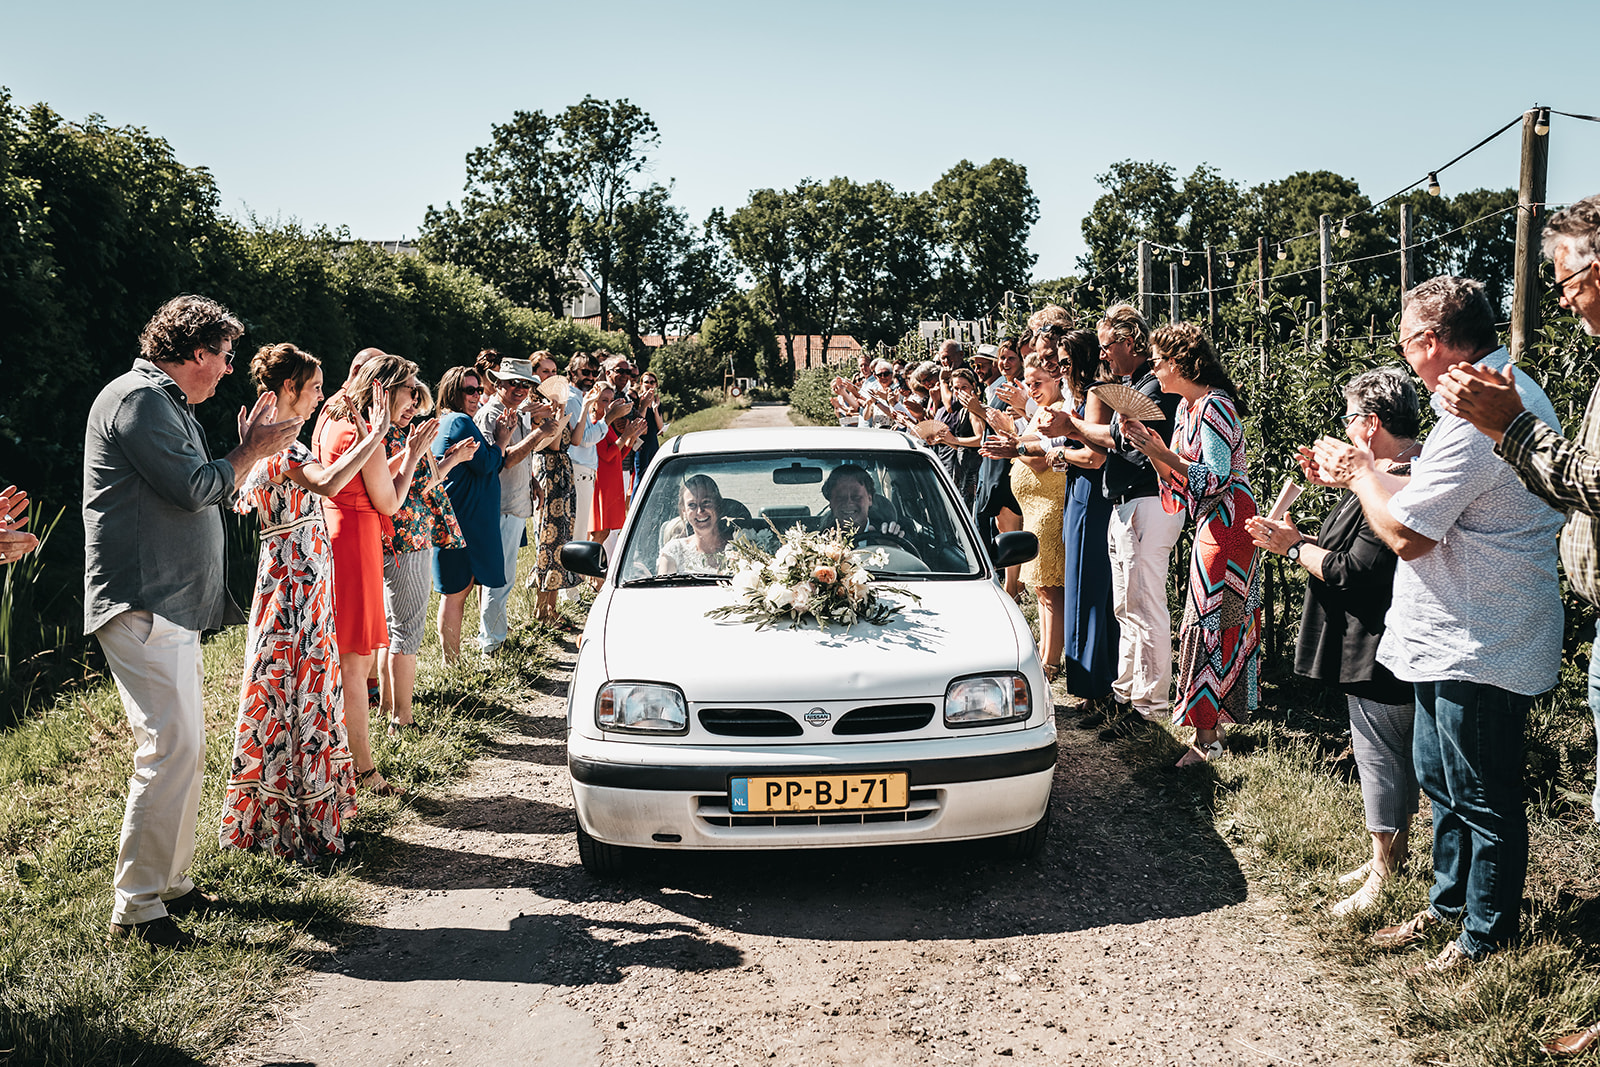 Bruiloft Olmenhorst summer wedding Netherlands3.jpg